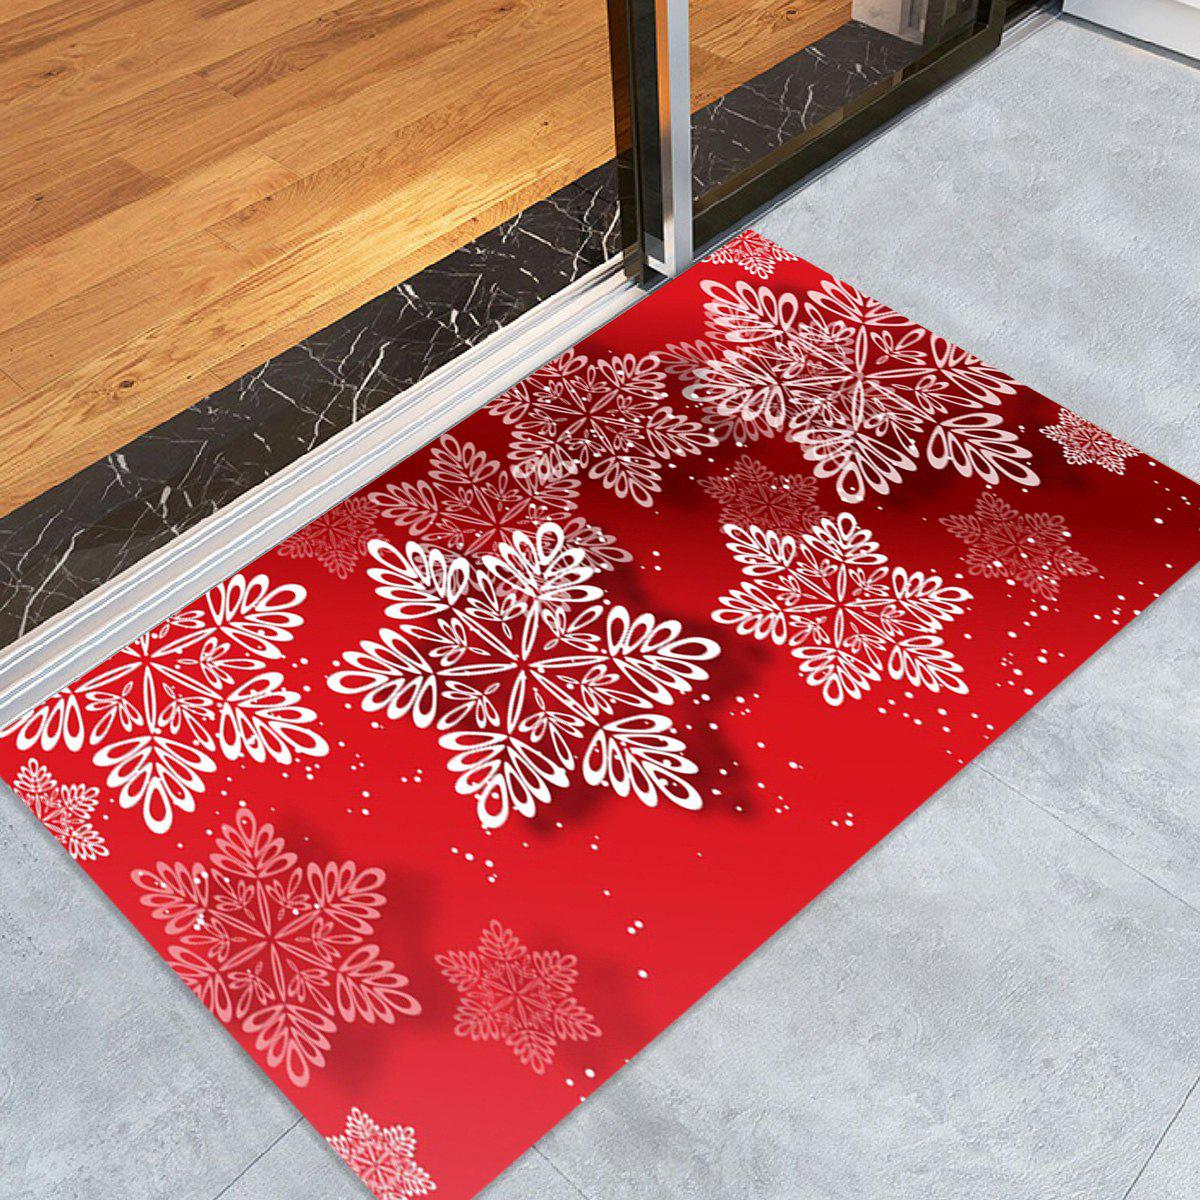 Christmas Snowflakes Pattern Indoor Outdoor Area Rug vintage pattern indoor outdoor area rug